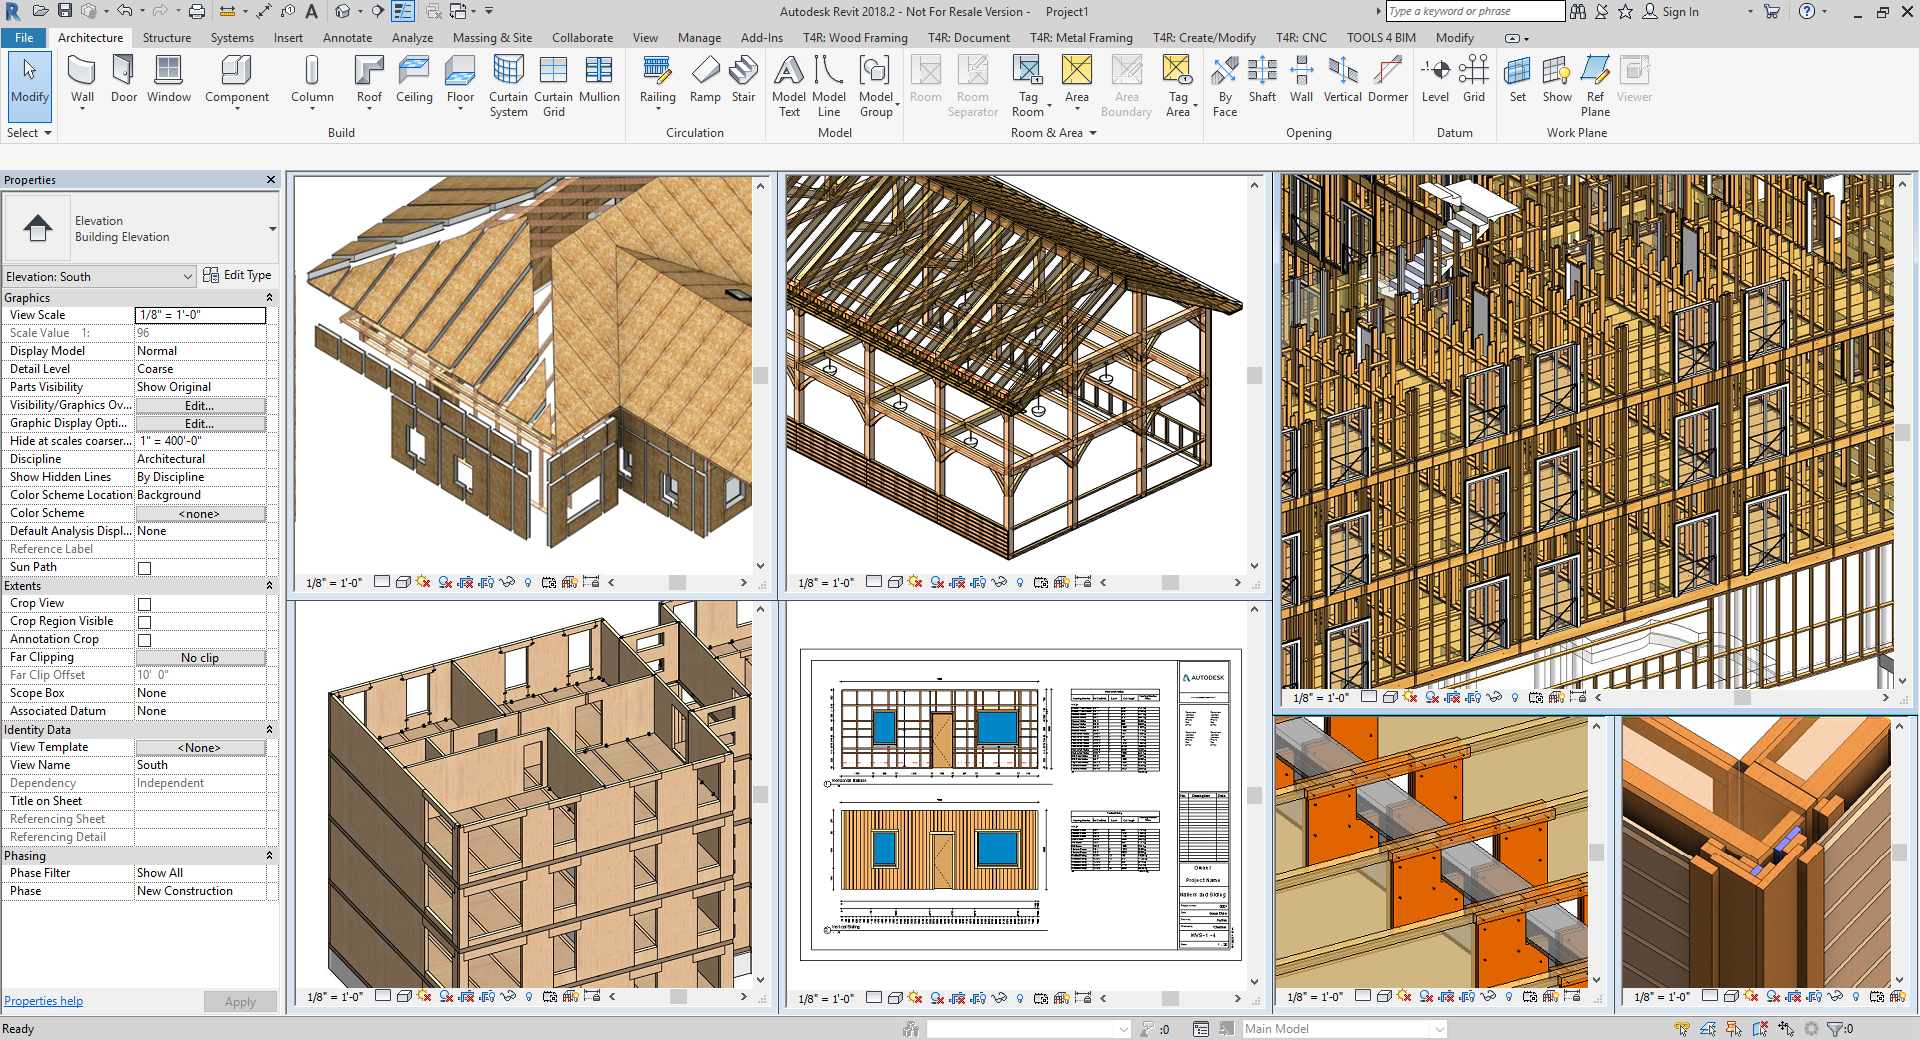 Wood Framing Bim Software For Prefabricated Timber Frame System Design In Revit Structural Engineering 3d Modeling Detailing Documentation Coordination Construction Agacad